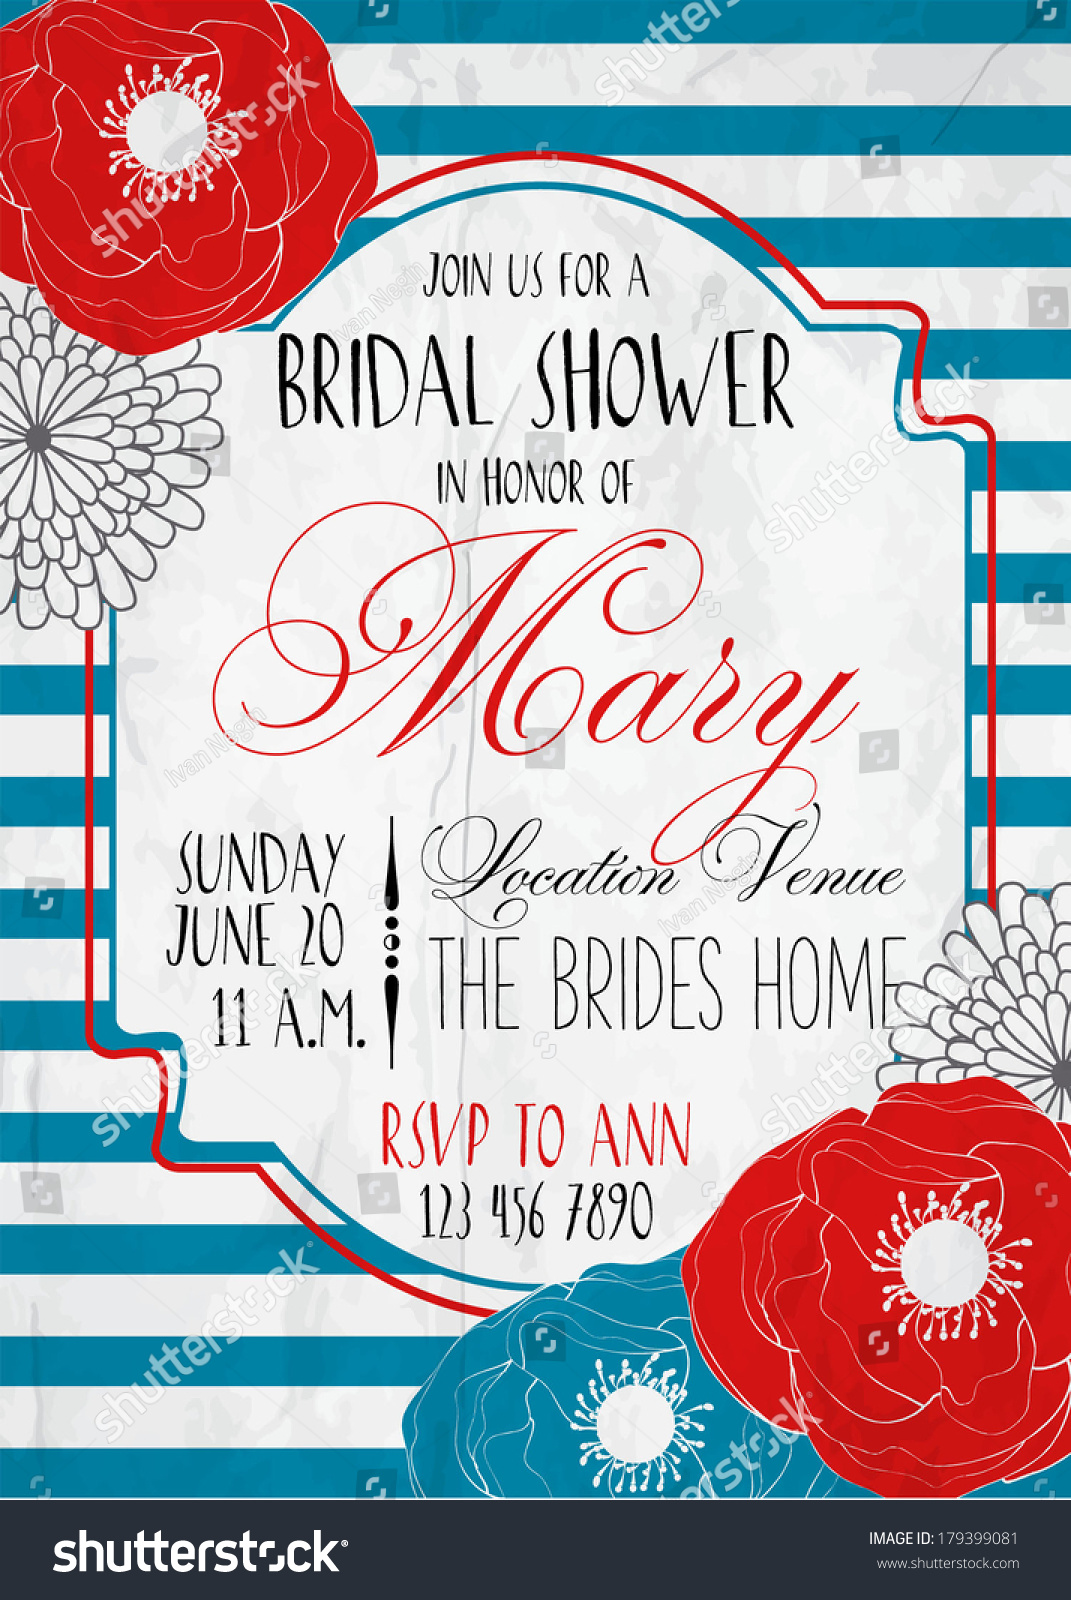 Bridal shower card stock vector 179399081 shutterstock bridal shower card kristyandbryce Image collections